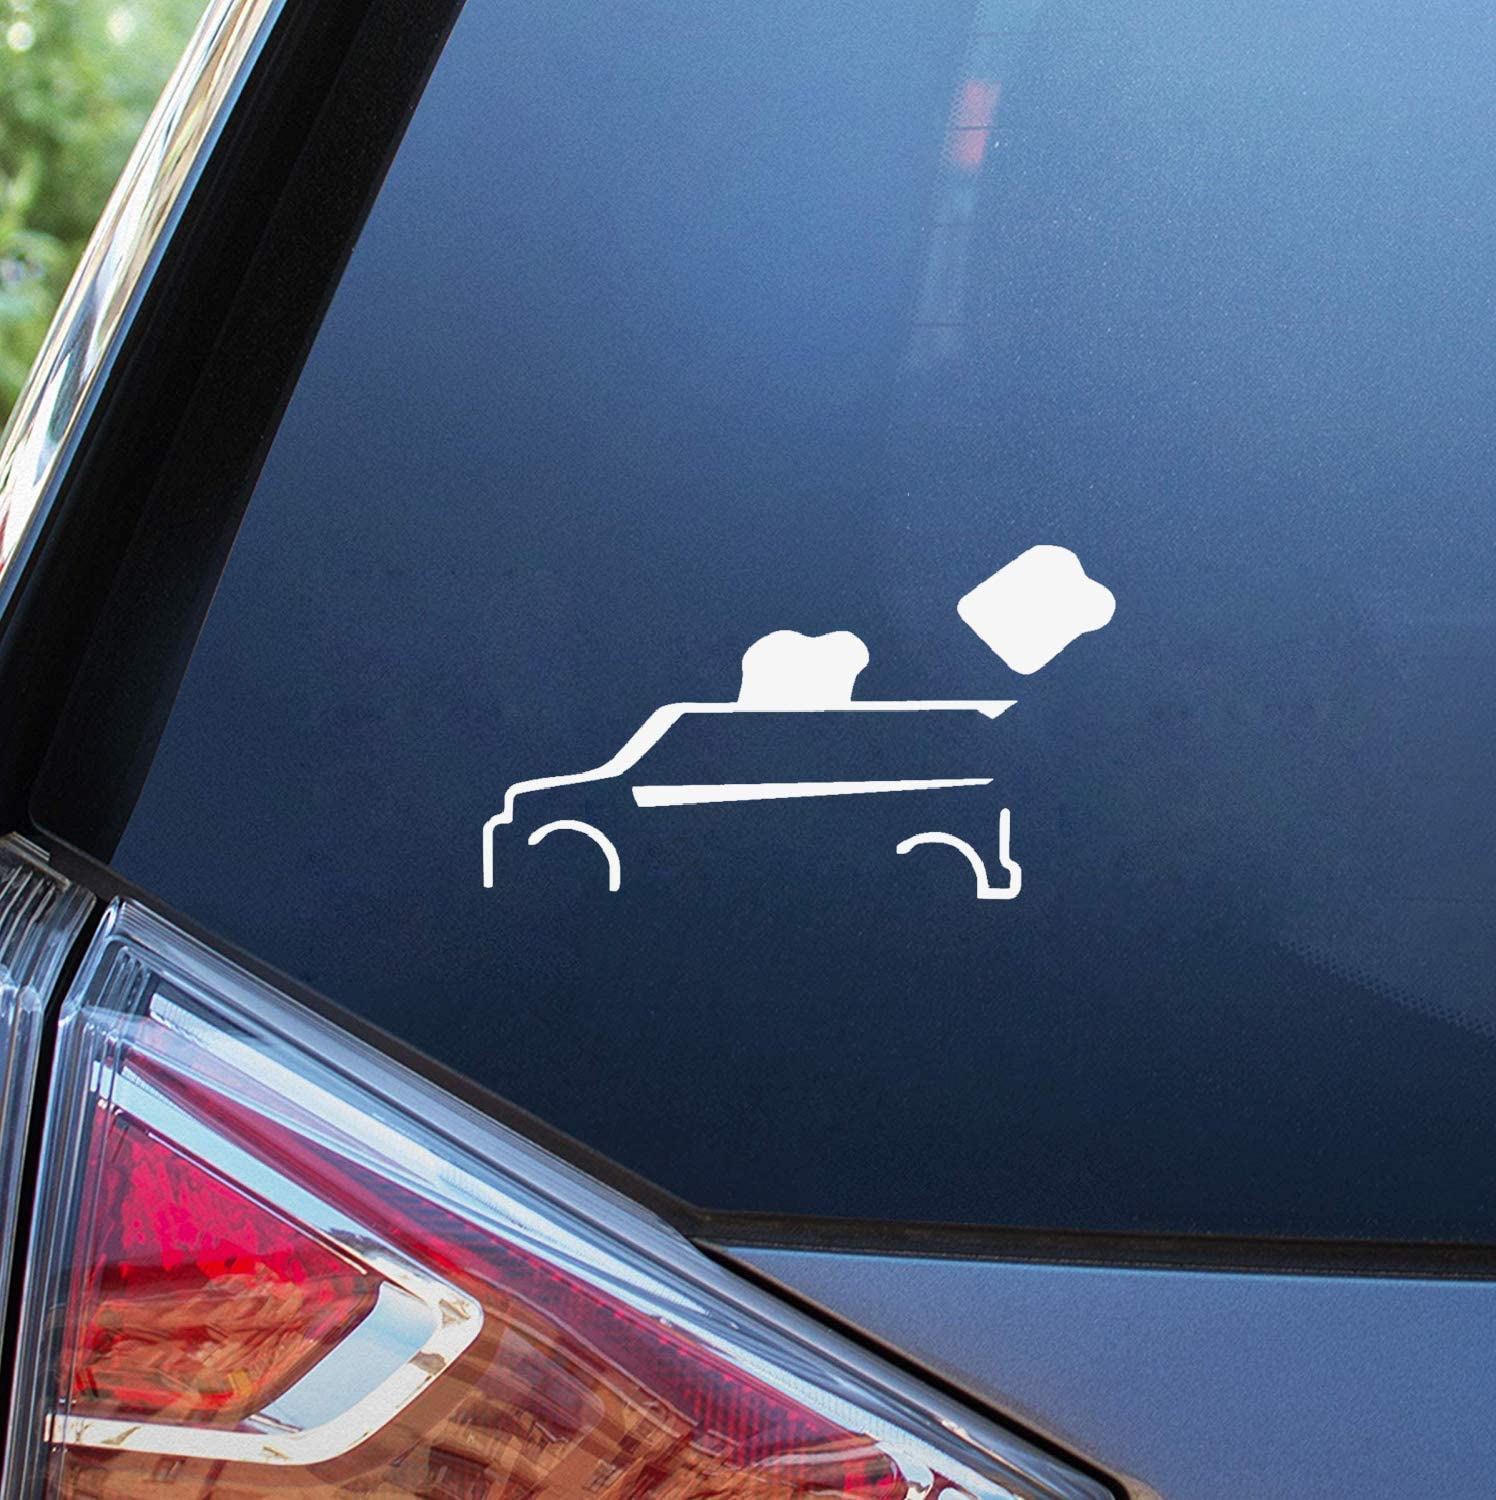 Natrire 3D Wall Stickers of Cars 18Cm X 10Cm Funny Scion Xb Toaster Car Truck Funny Window Sticker Decal Car Styling Car Sticker